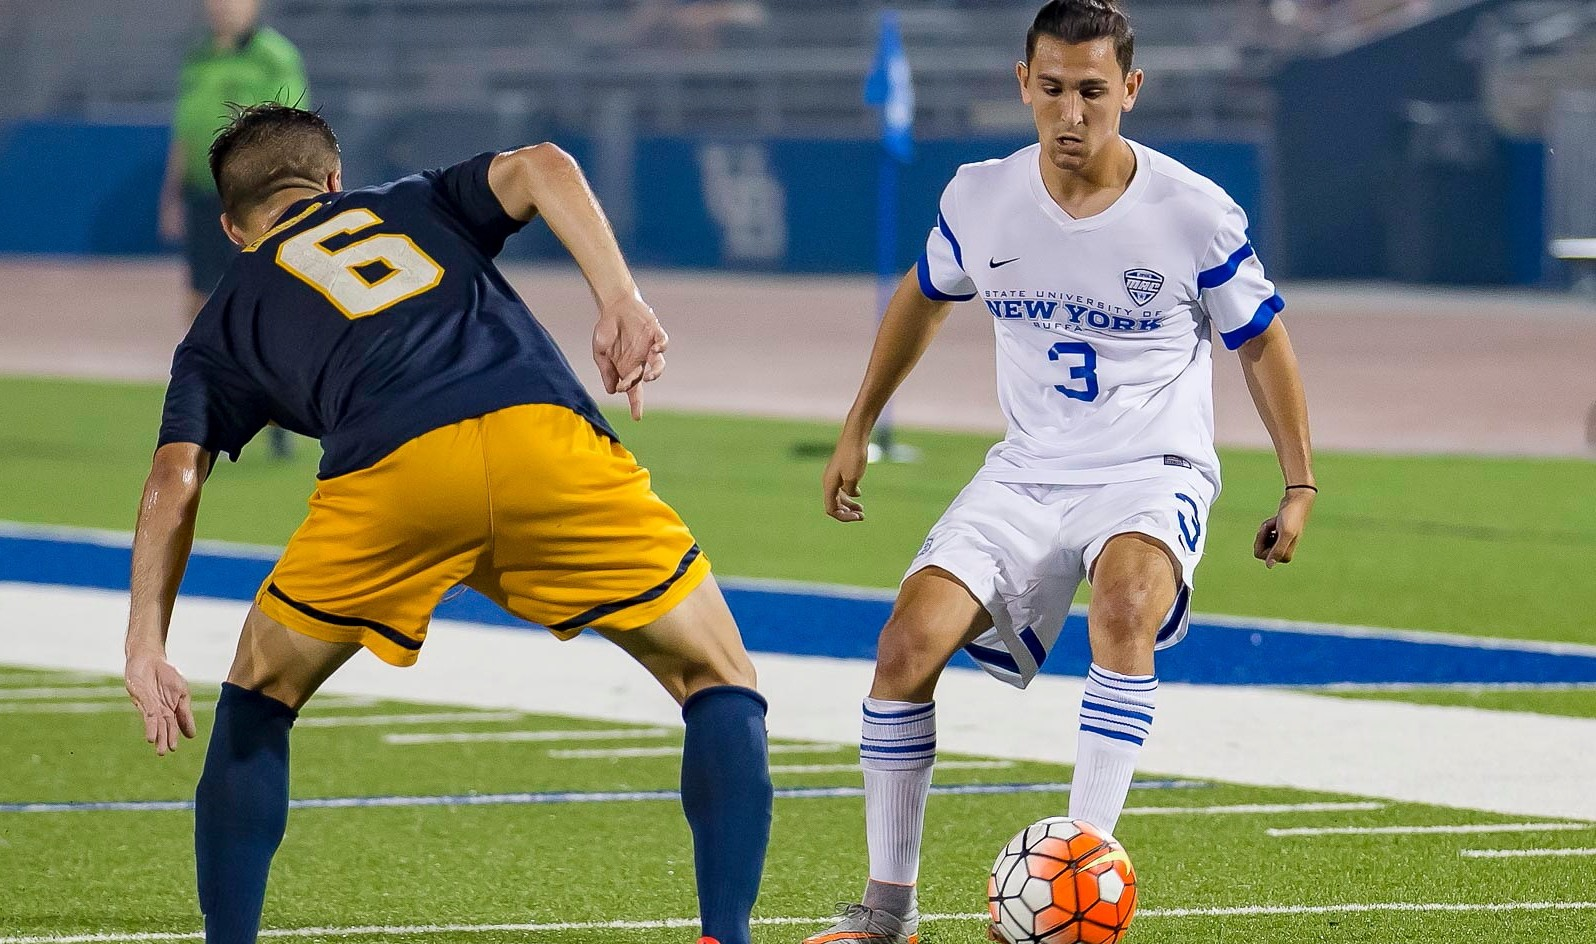 Daniel Cramarossa, right, and UB face a crucial MAC match on Friday night. (Don Nieman/Special to The News)